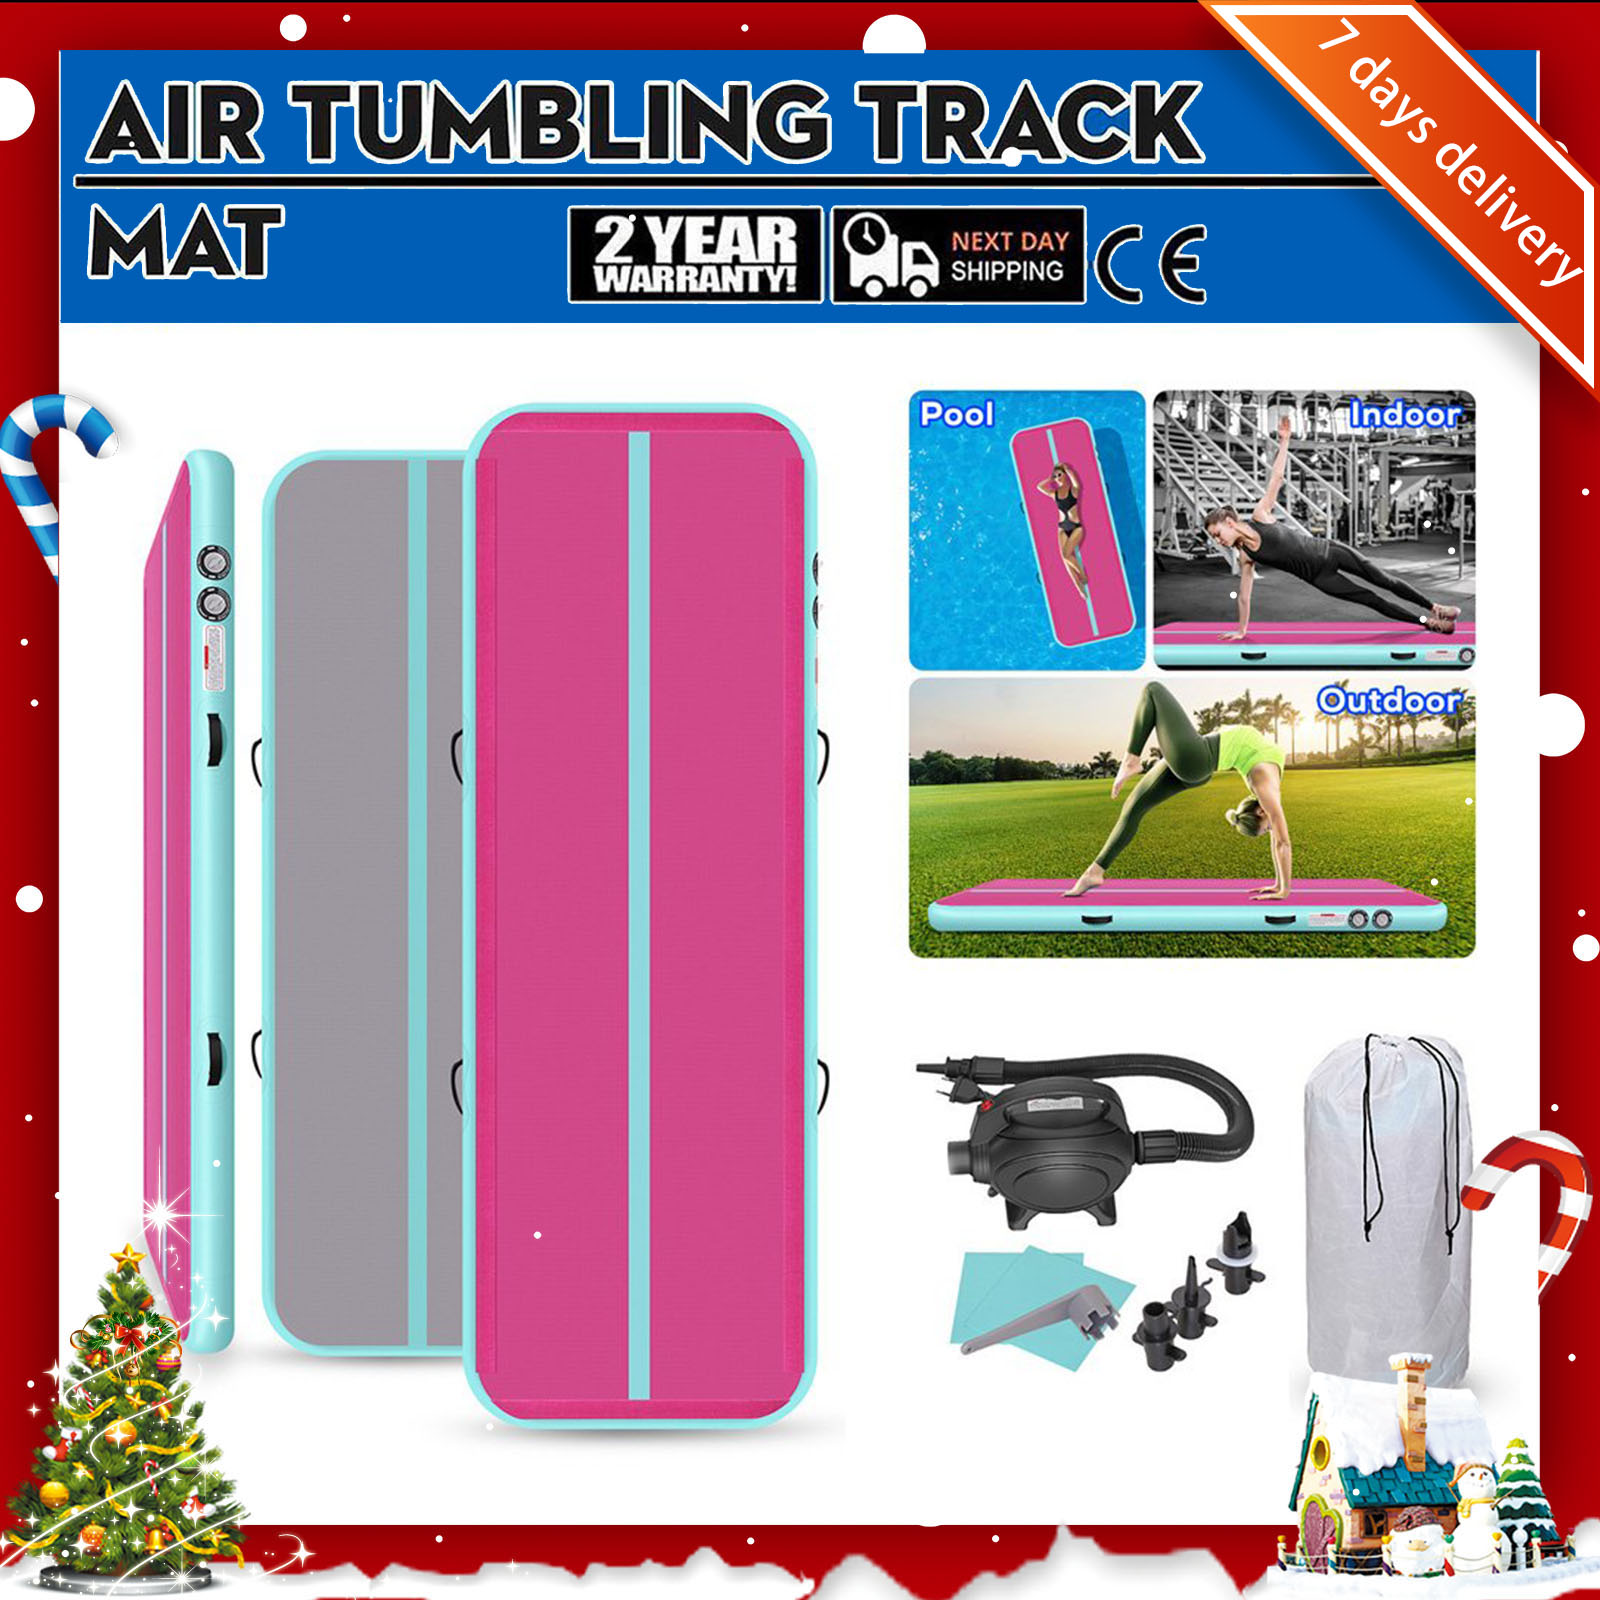 Rimdoc 4/5/6M Tumbling Air Track Floor Airtrack Inflatable Training/Cheerleading/Beach Olympics Gym Mat For Kids Birthday Gift